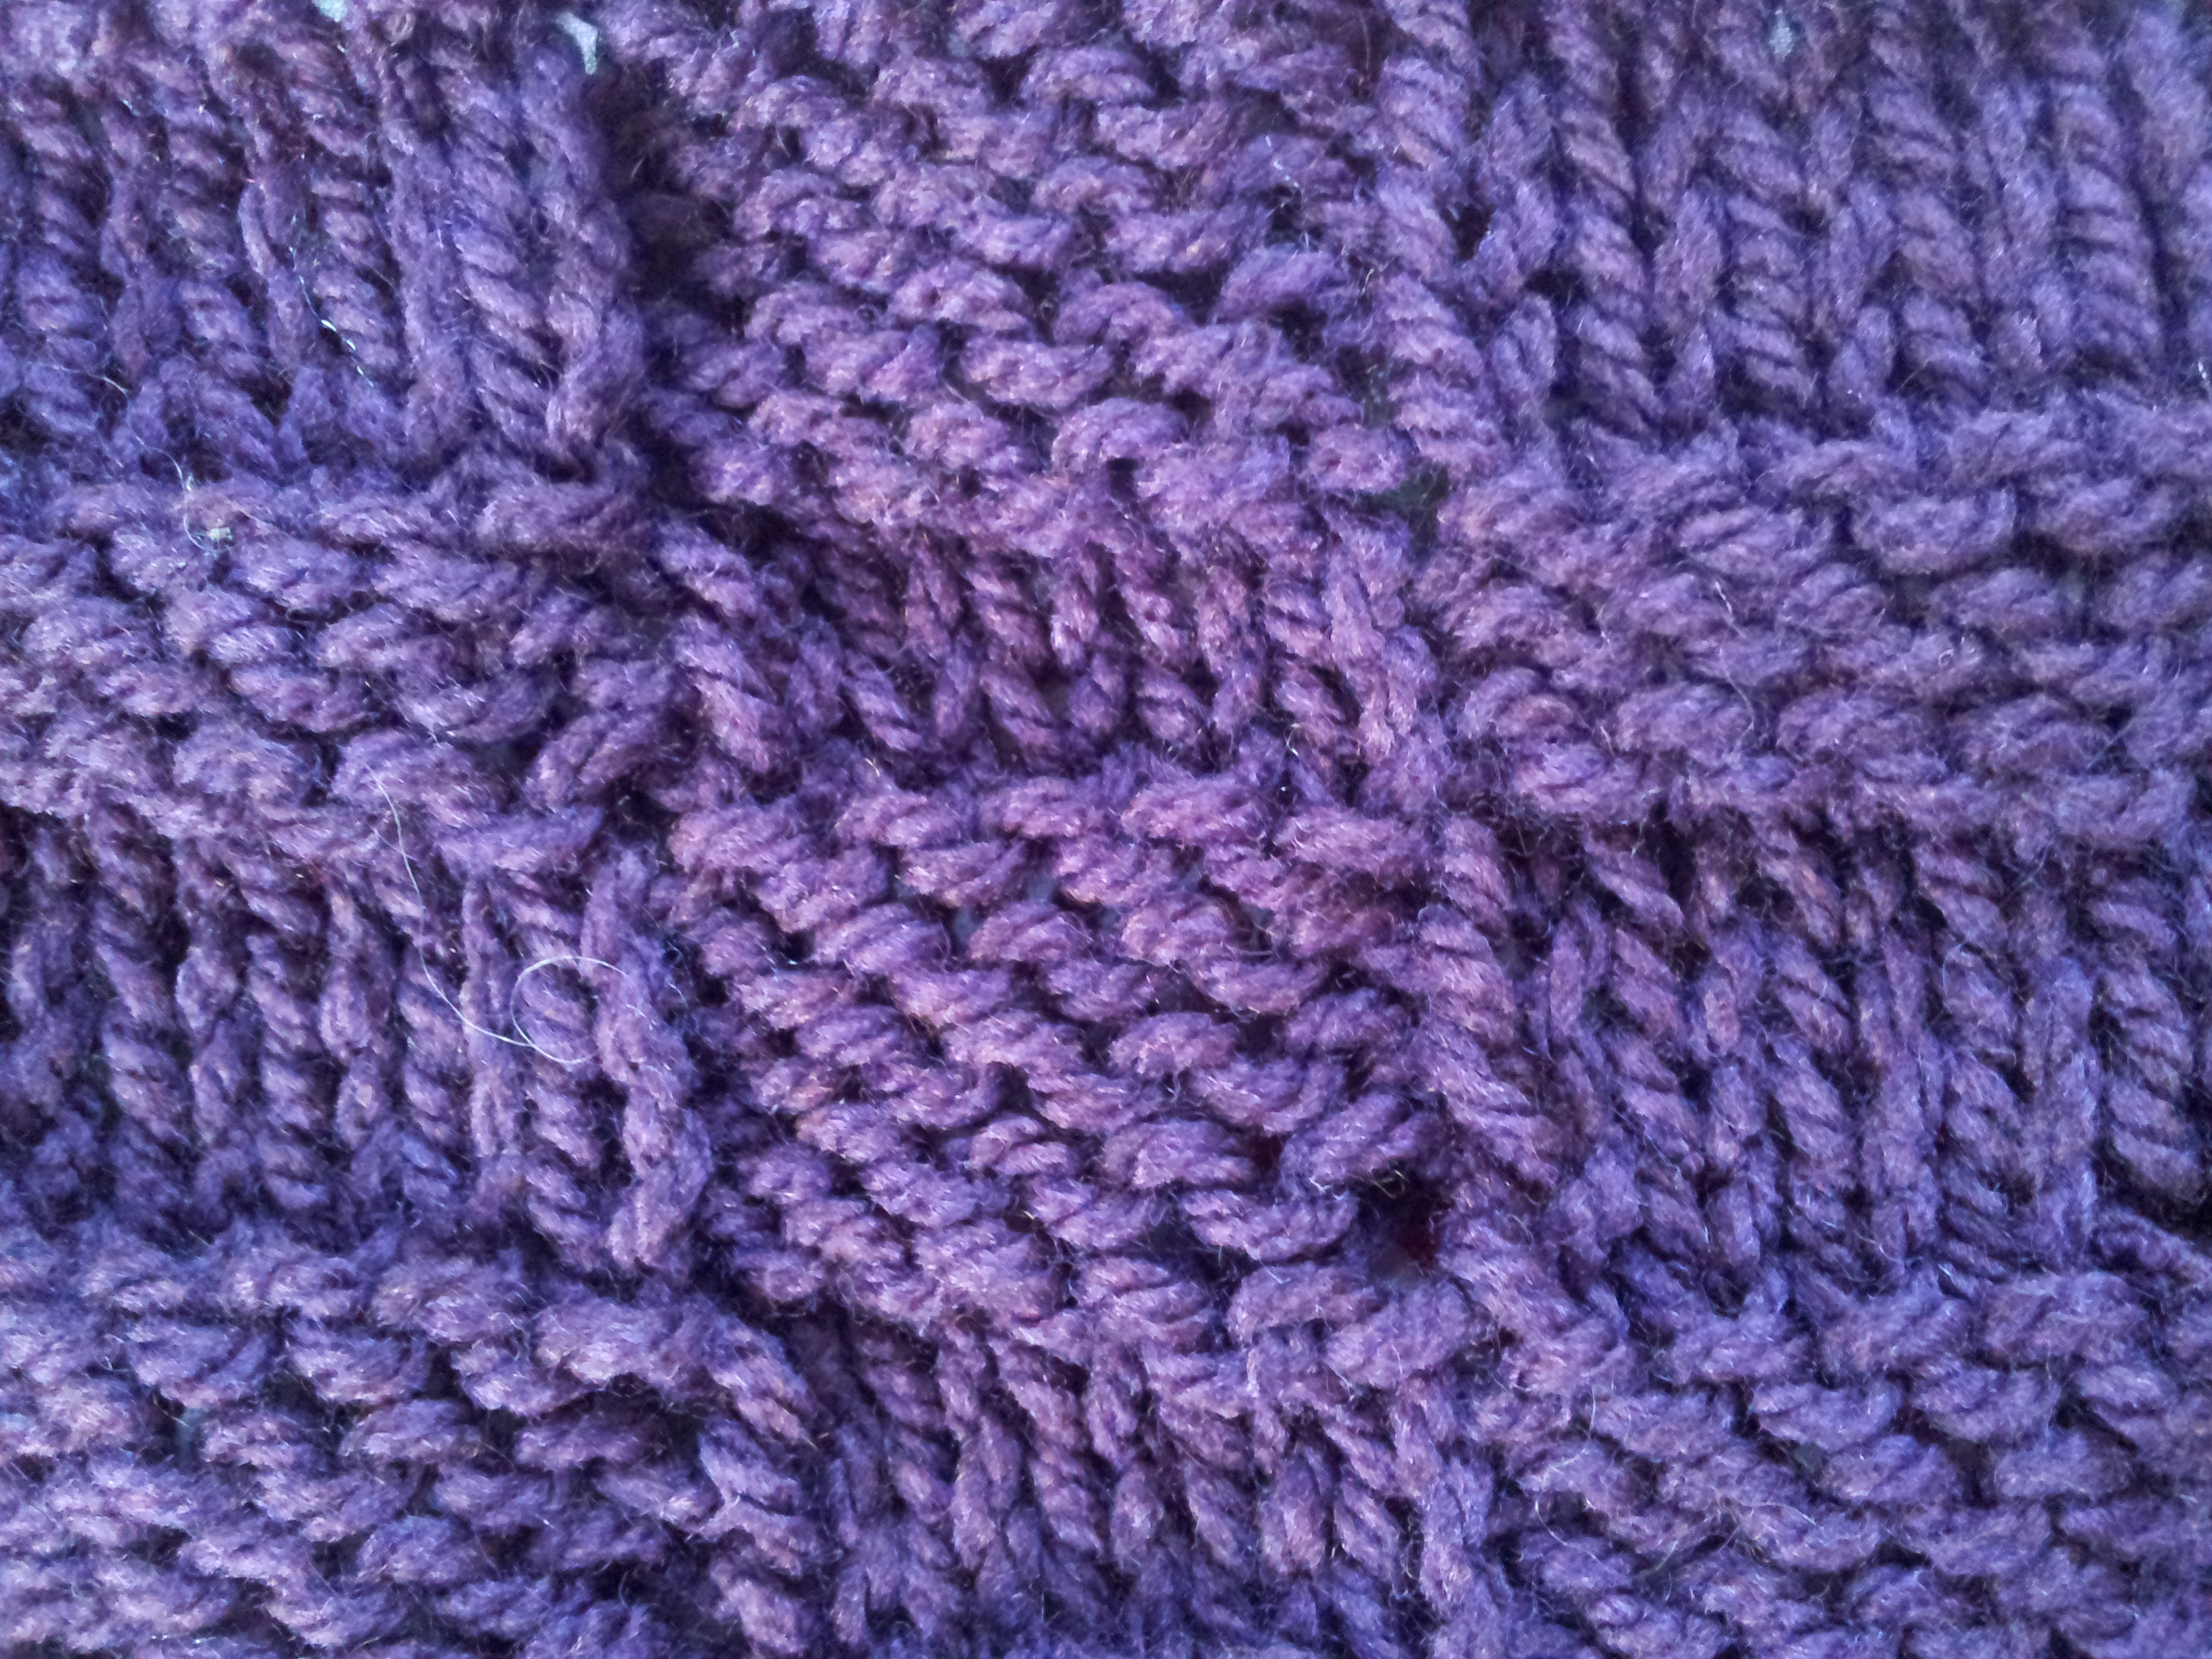 Knitting Stitches Sl1k : Basic Knitted Fabrics thestitchsharer